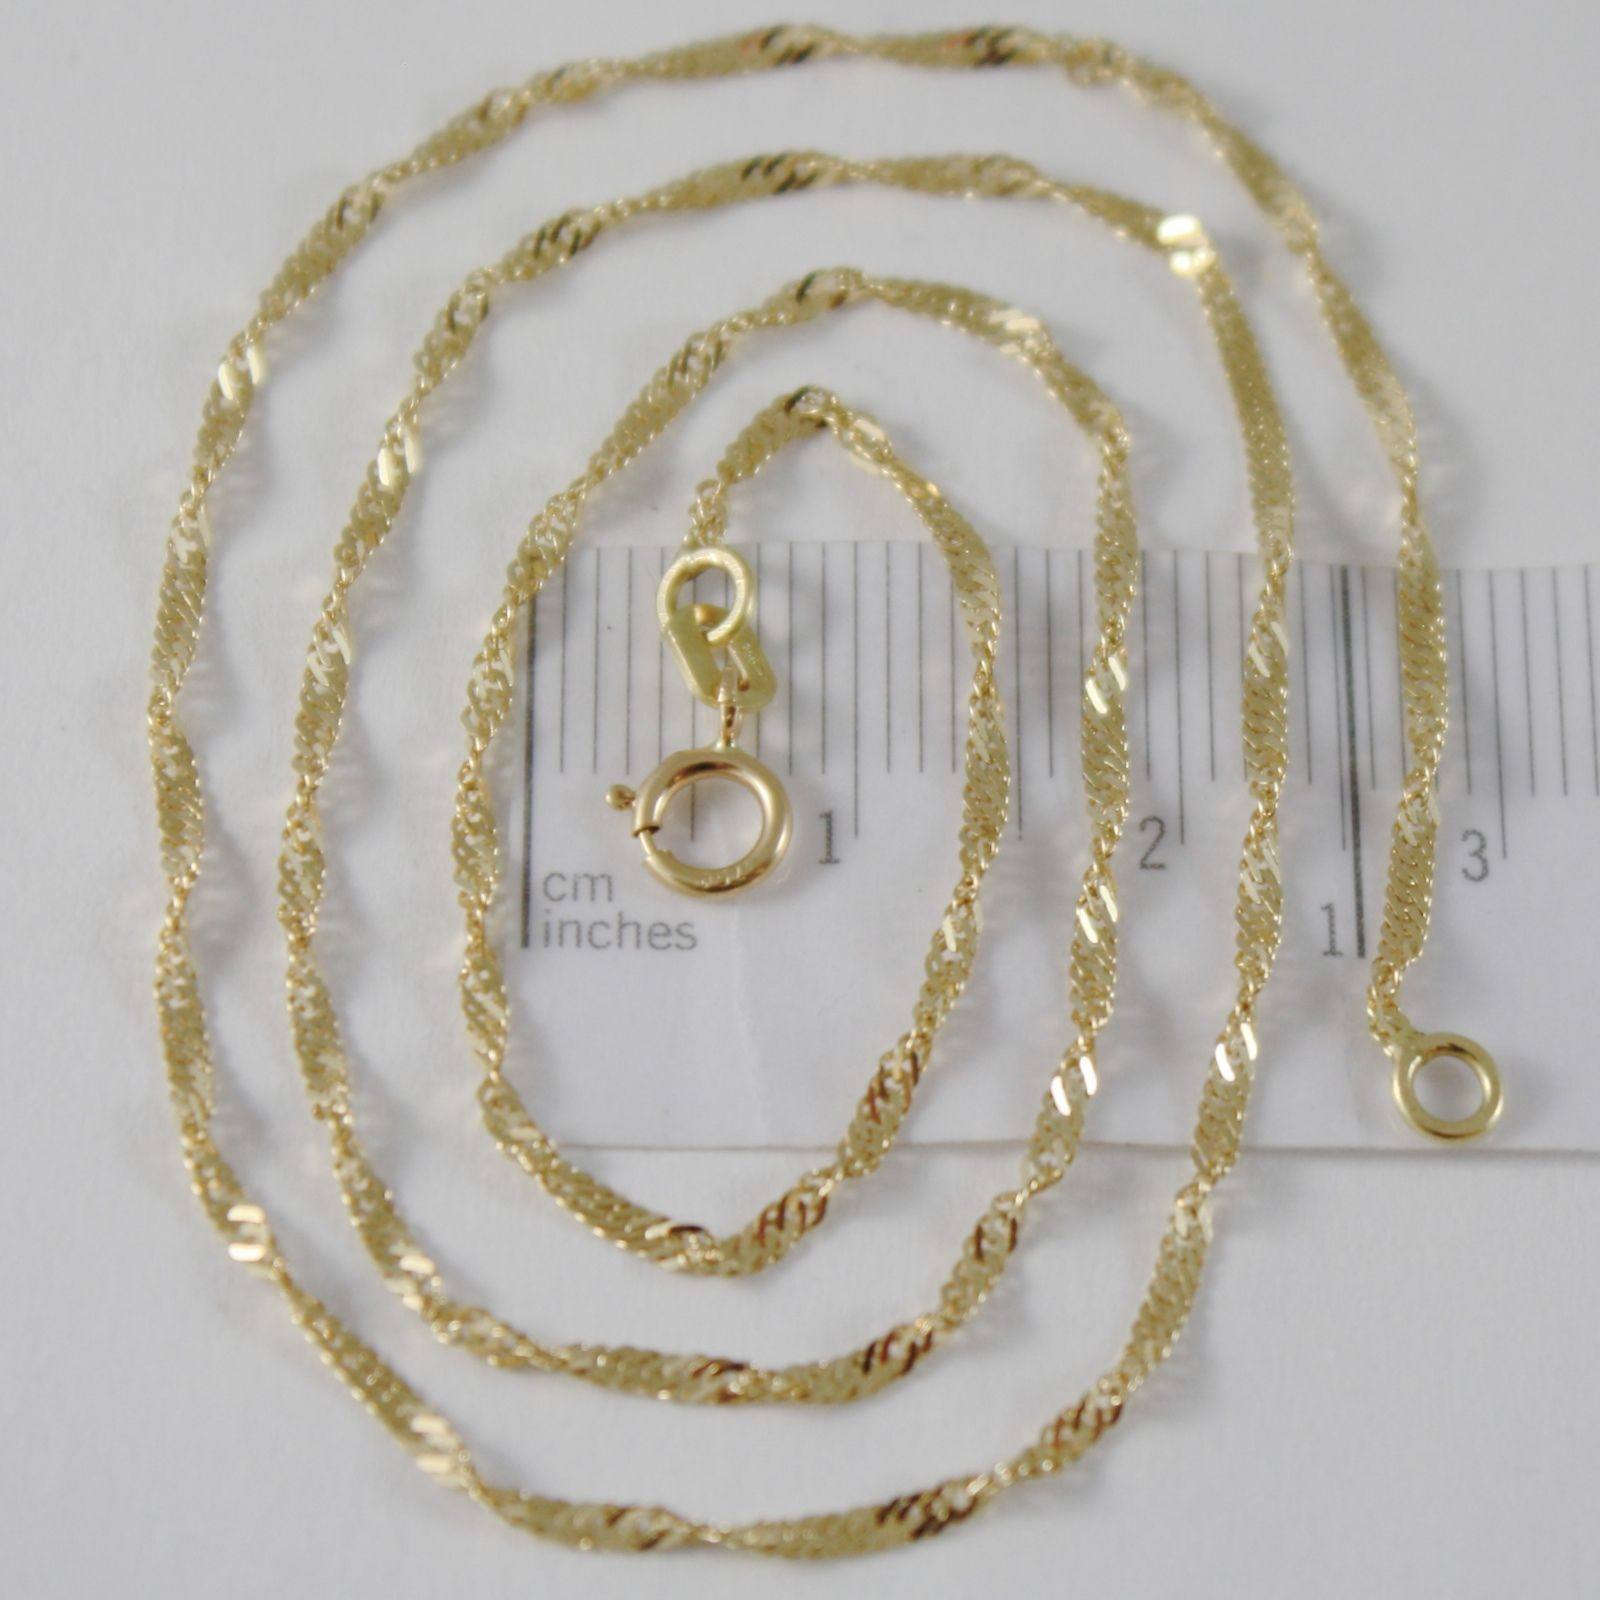 SOLID 18K YELLOW GOLD SINGAPORE BRAID ROPE CHAIN 20 INCHES, 2 MM MADE IN ITALY